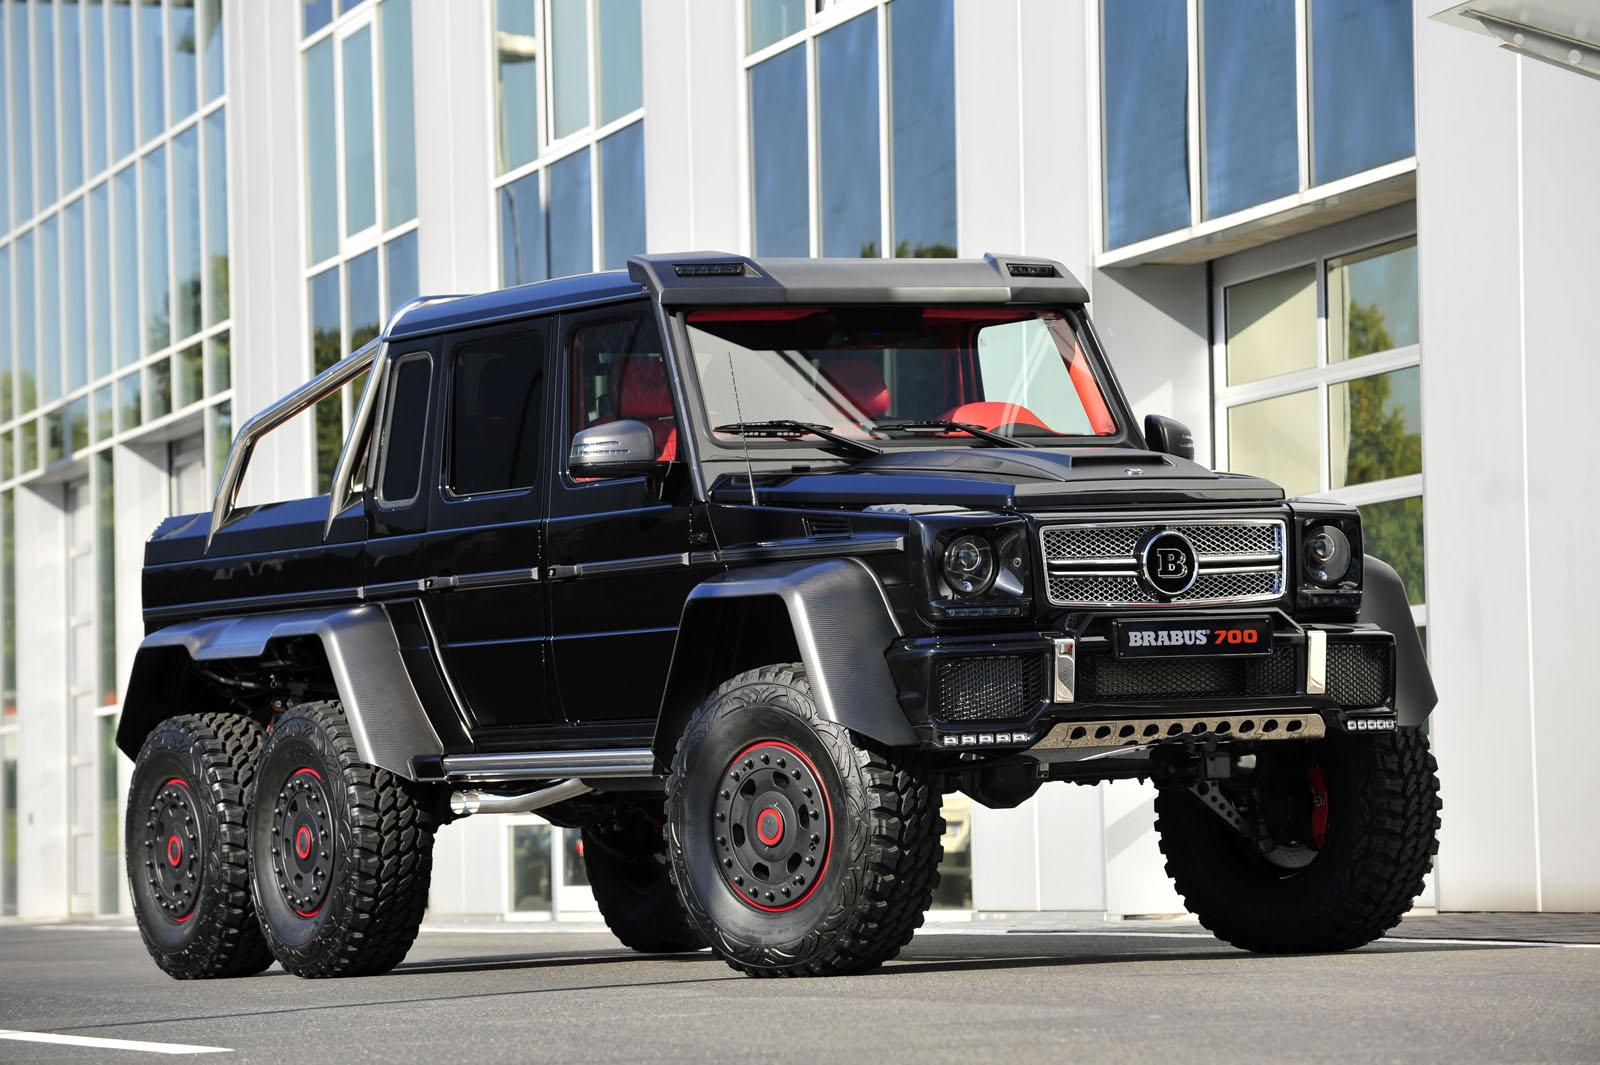 2013 Mercedes Benz G63 Amg 6x6 B63s 700 By Brabus Top Speed